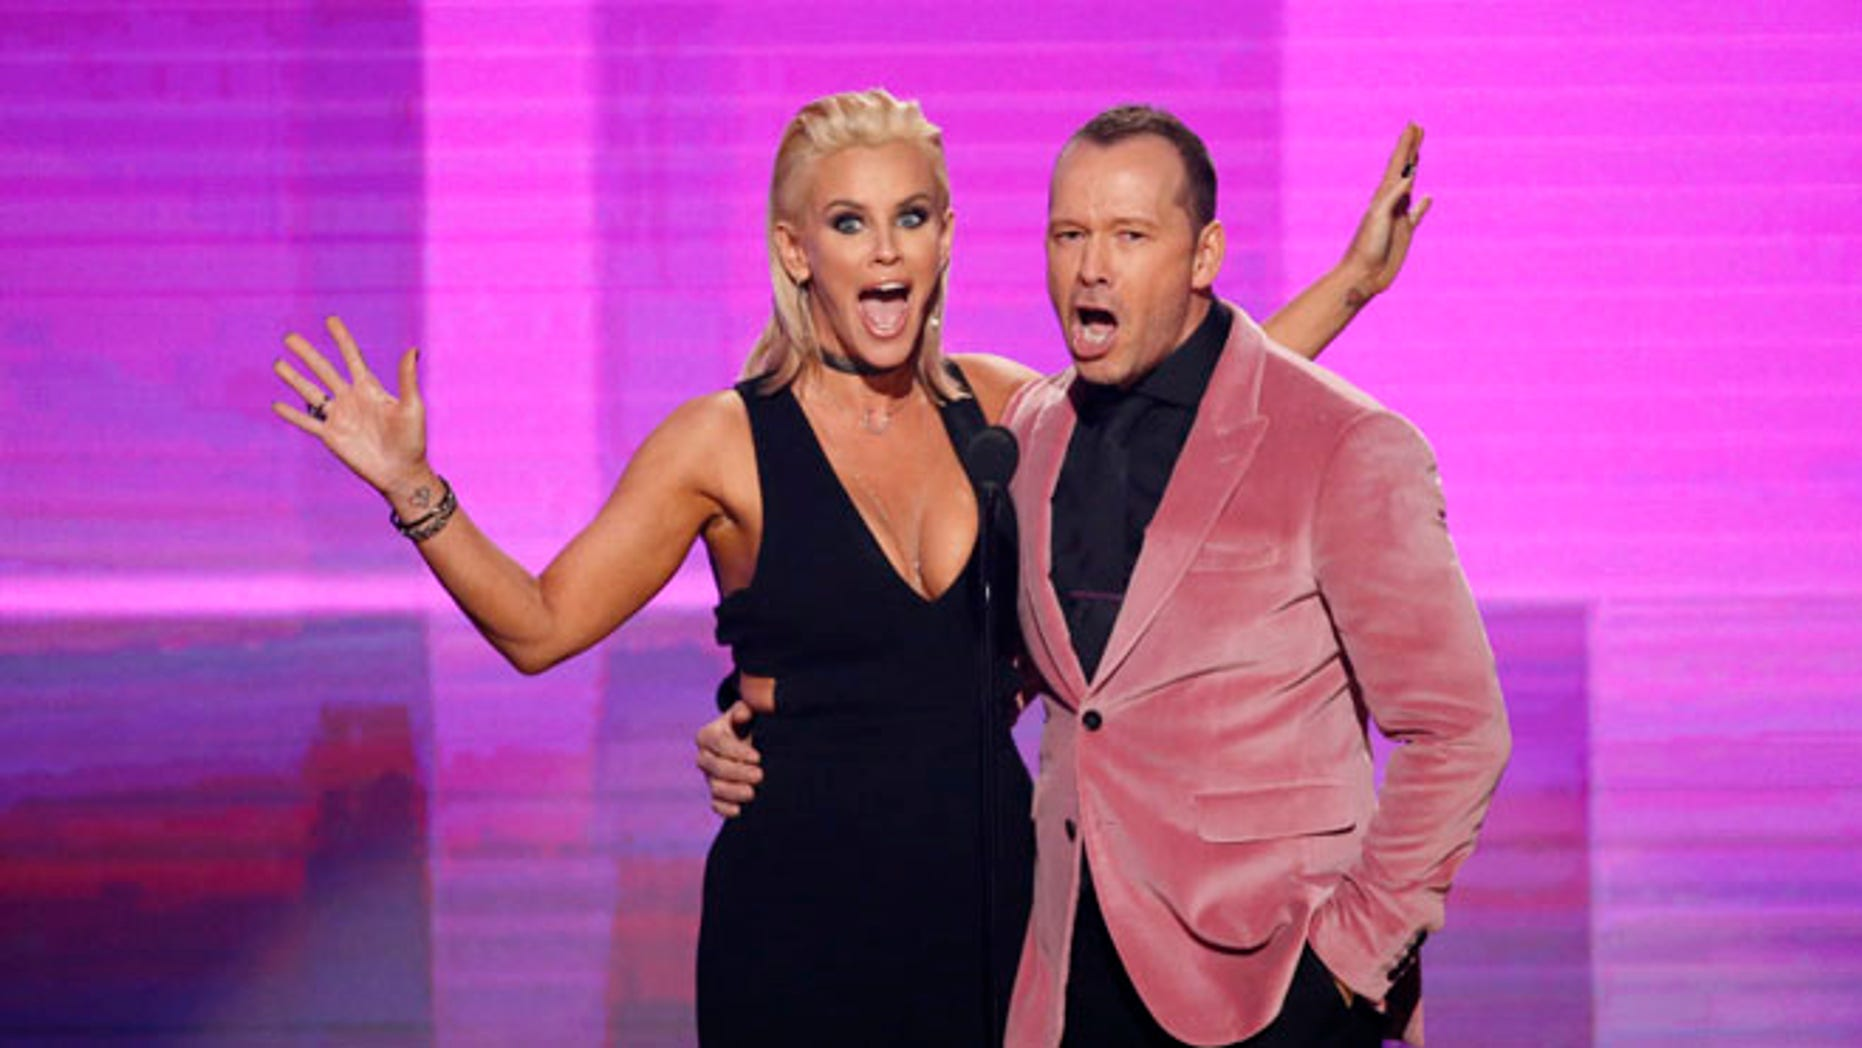 Donnie Wahlberg (pictured with wife Jenny McCarthy) left a $2K tip at a Waffle House in North Carolina.